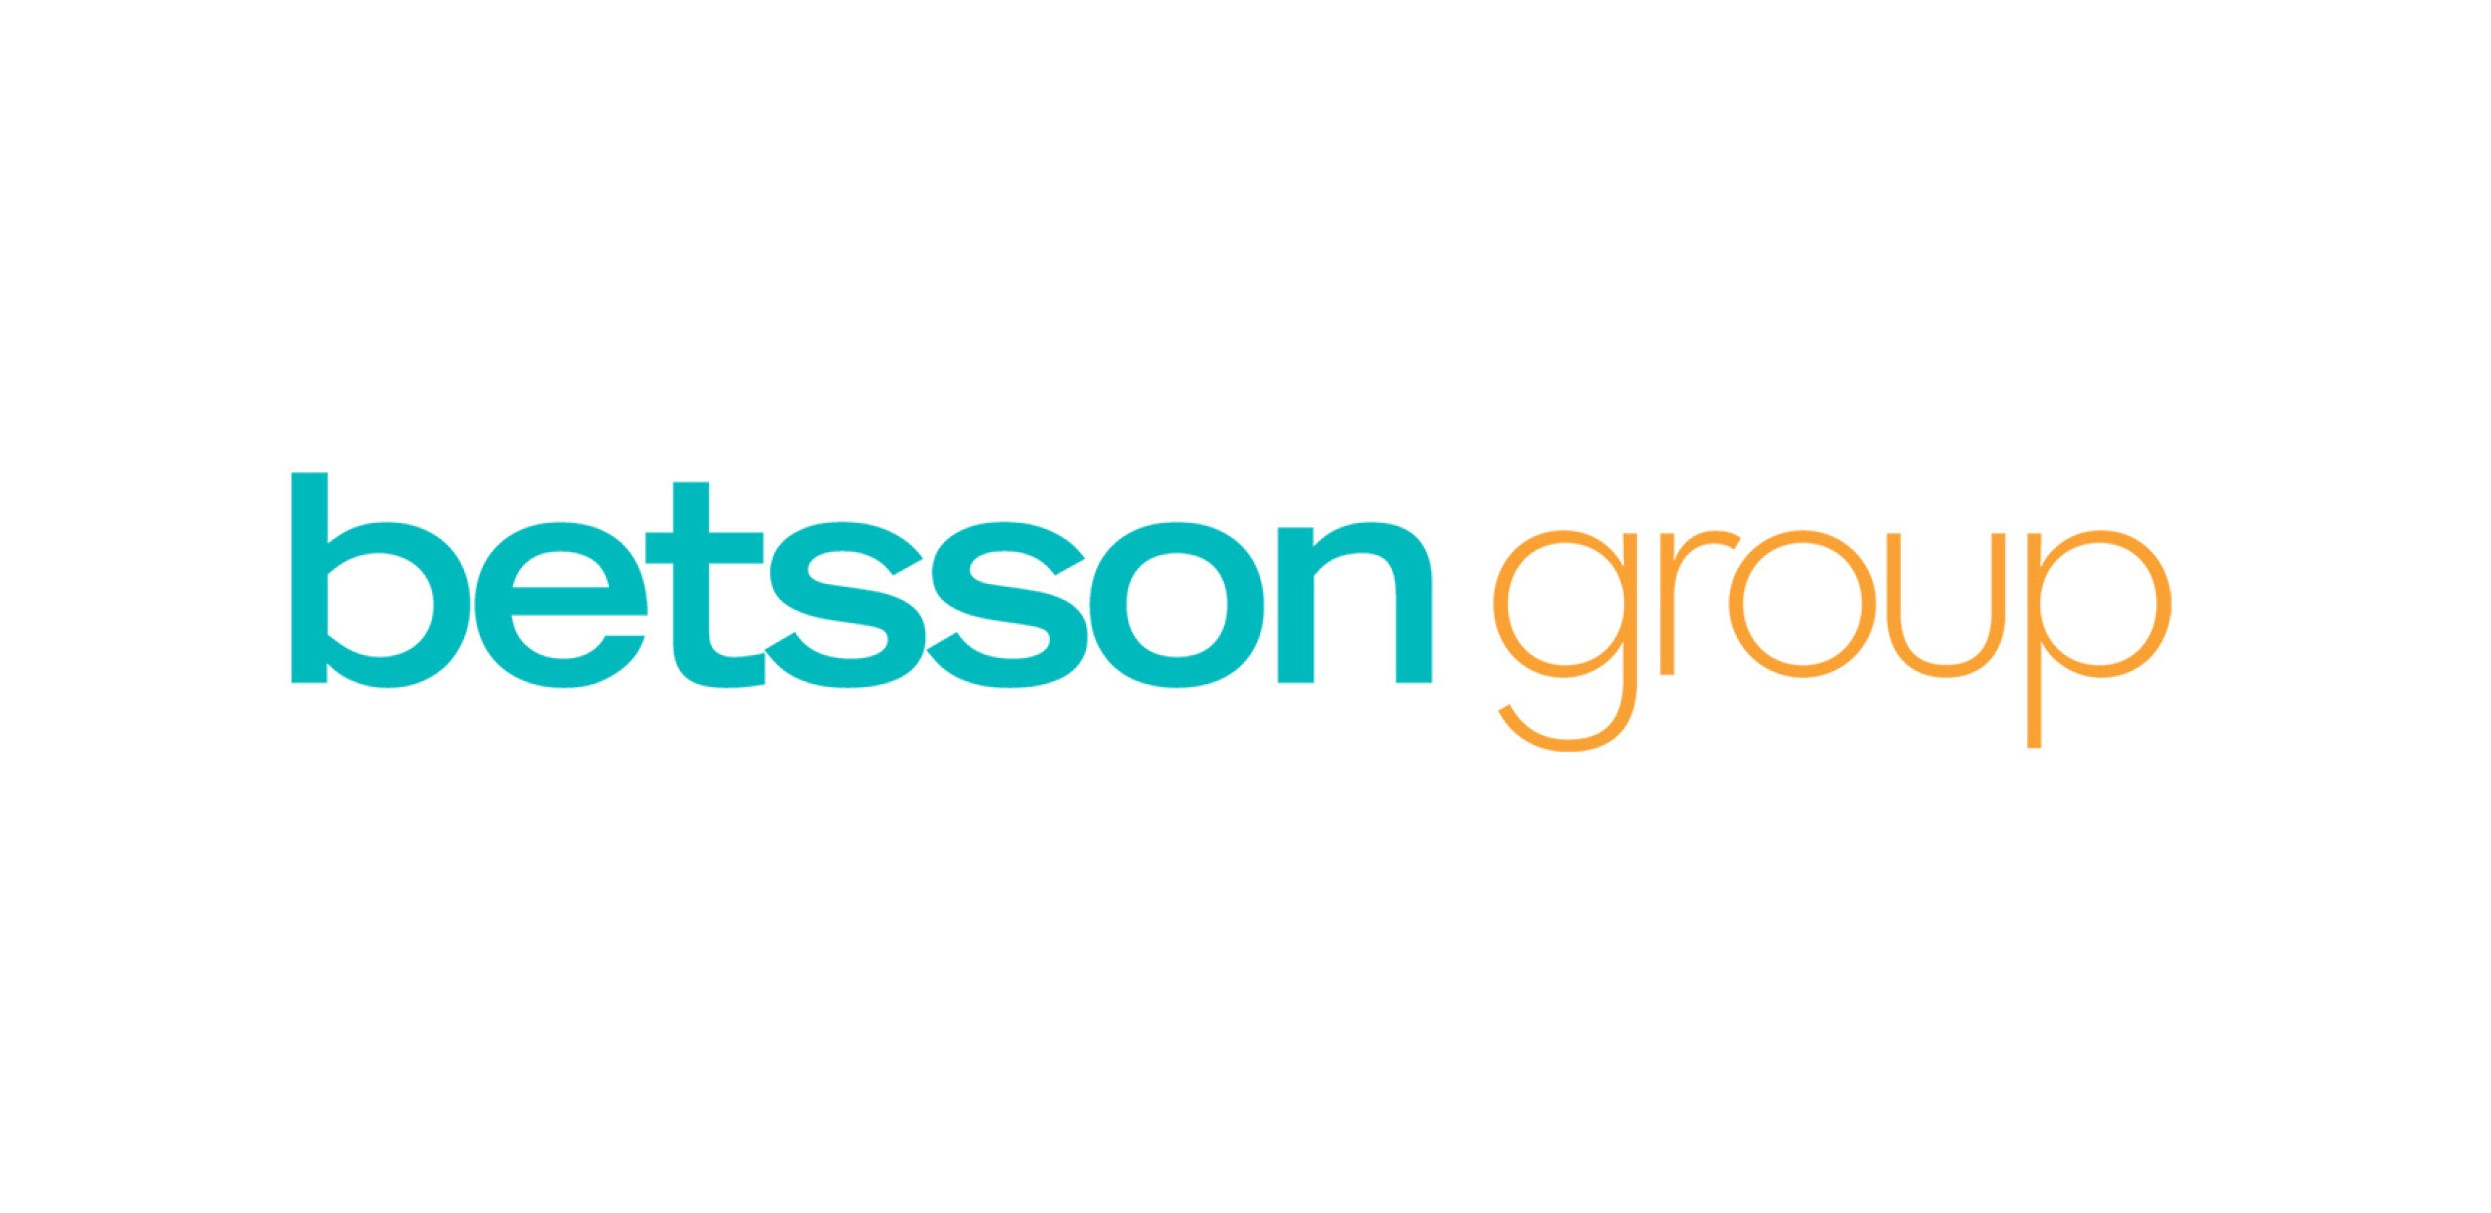 Betsson's ambition: to be the inspiration for safer gambling